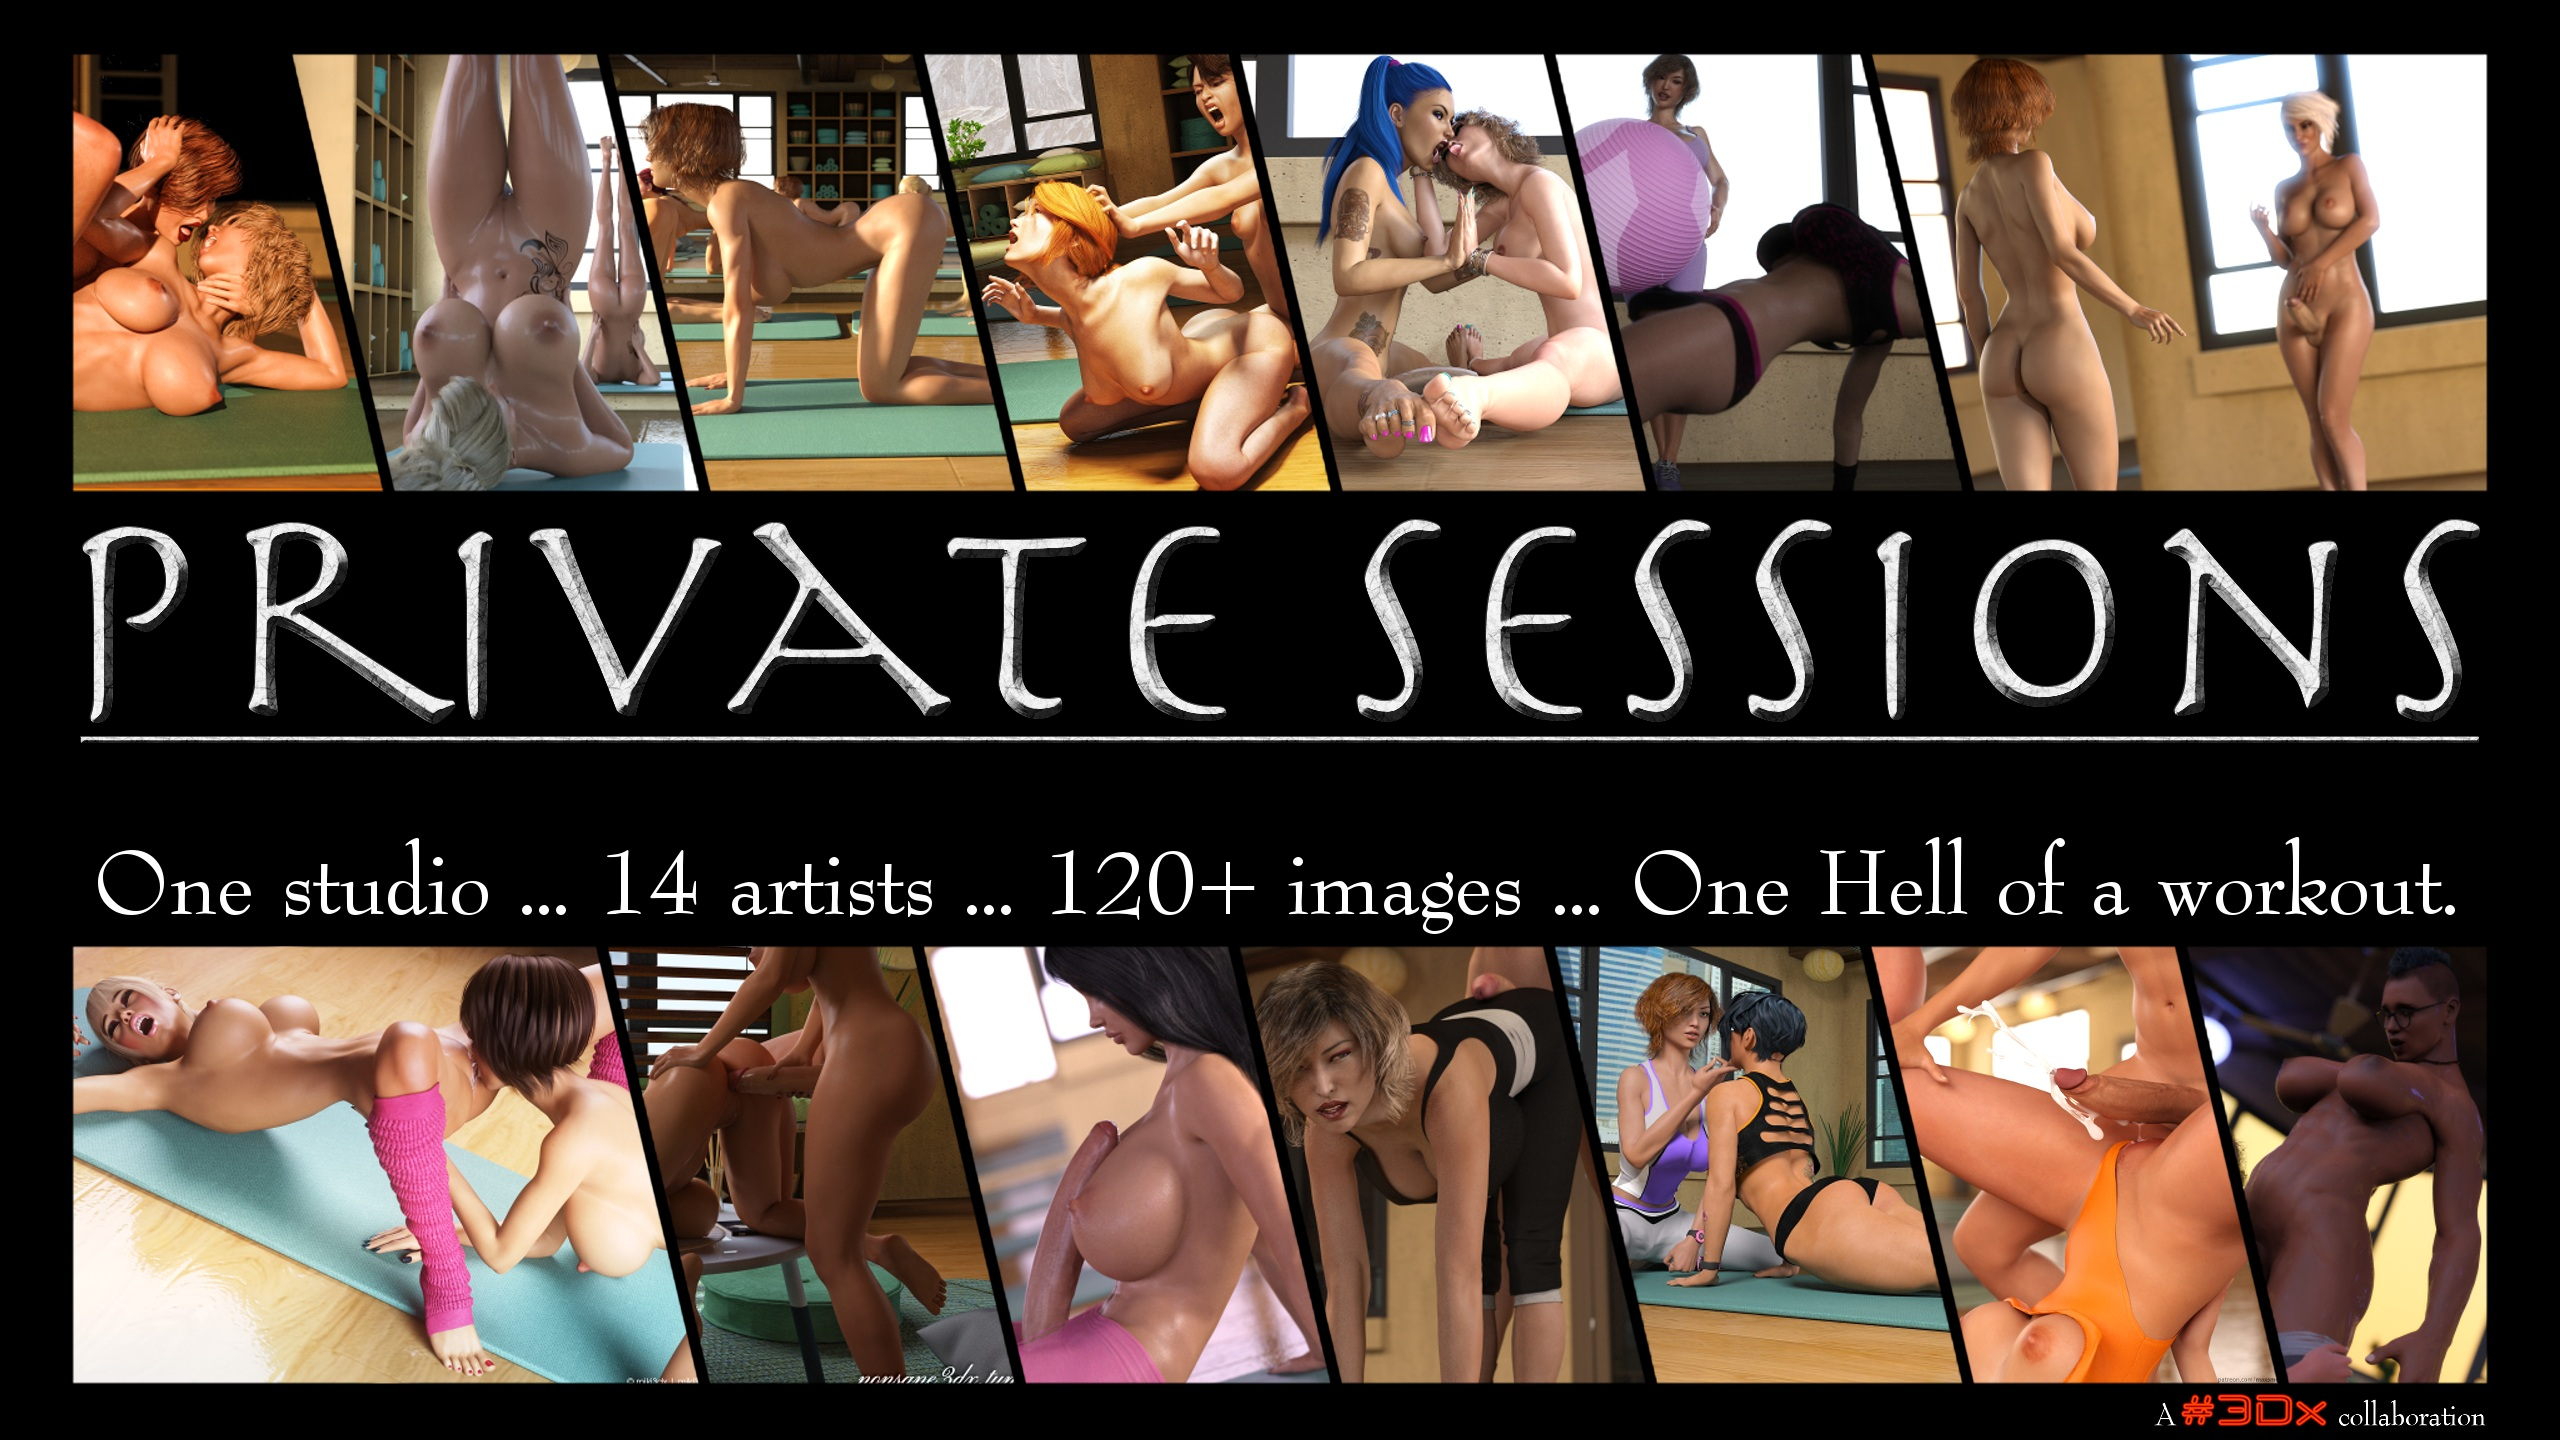 Hashtag 3Dx – Private Sessions